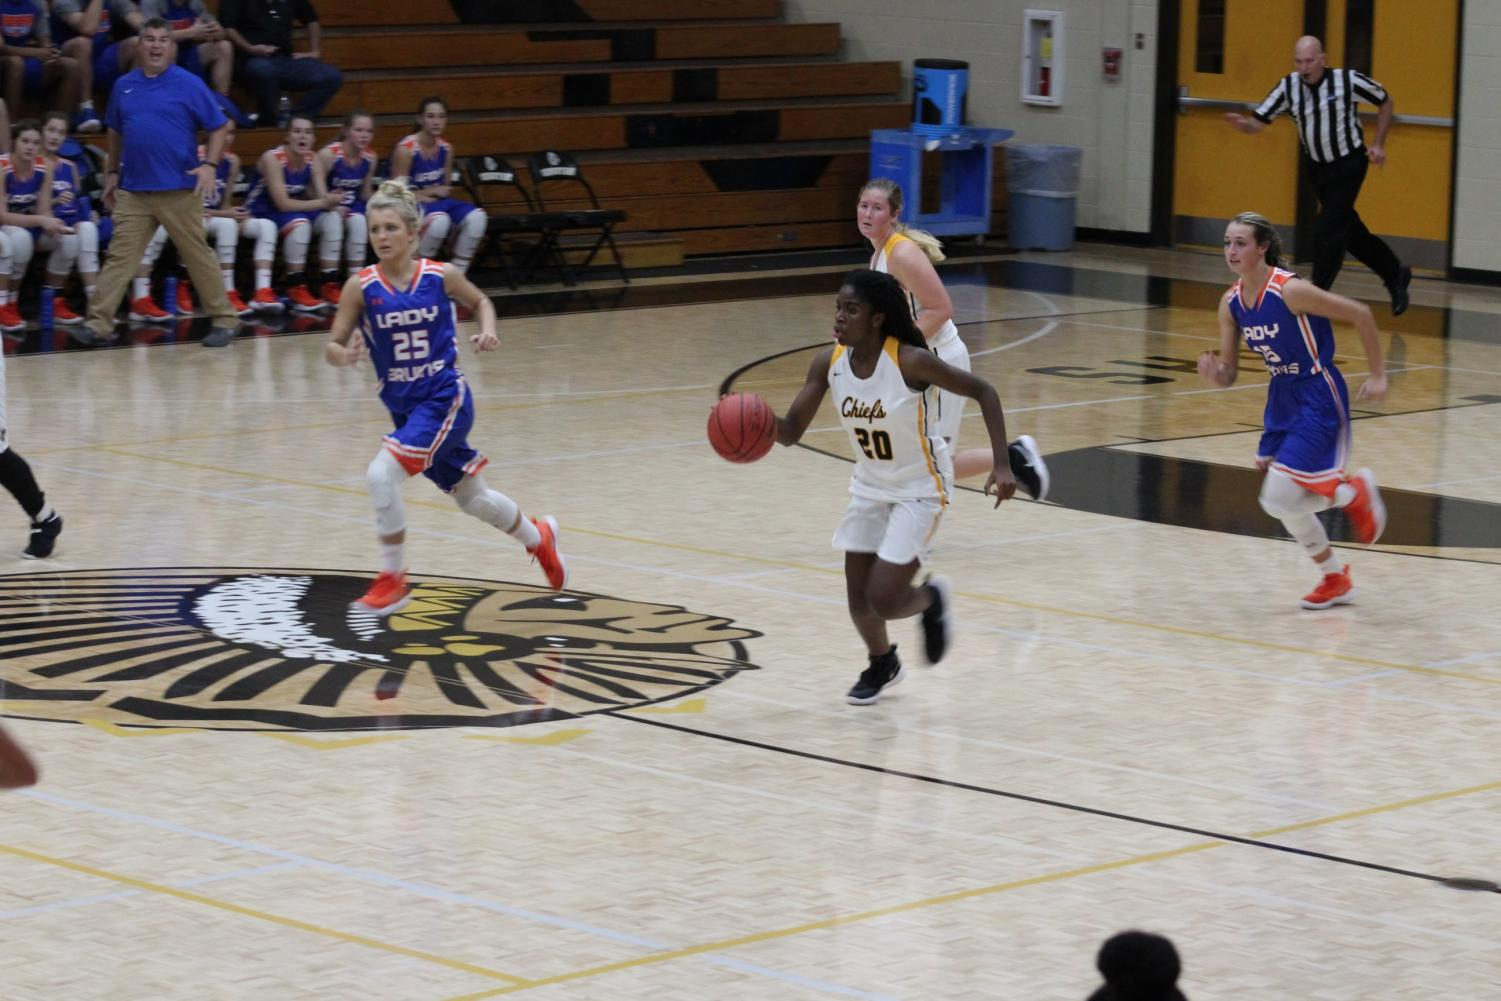 Senior Sydney Rosant dribbles down the court on a fast break. Rosant led the team to a first-round playoff win against Alpharetta.